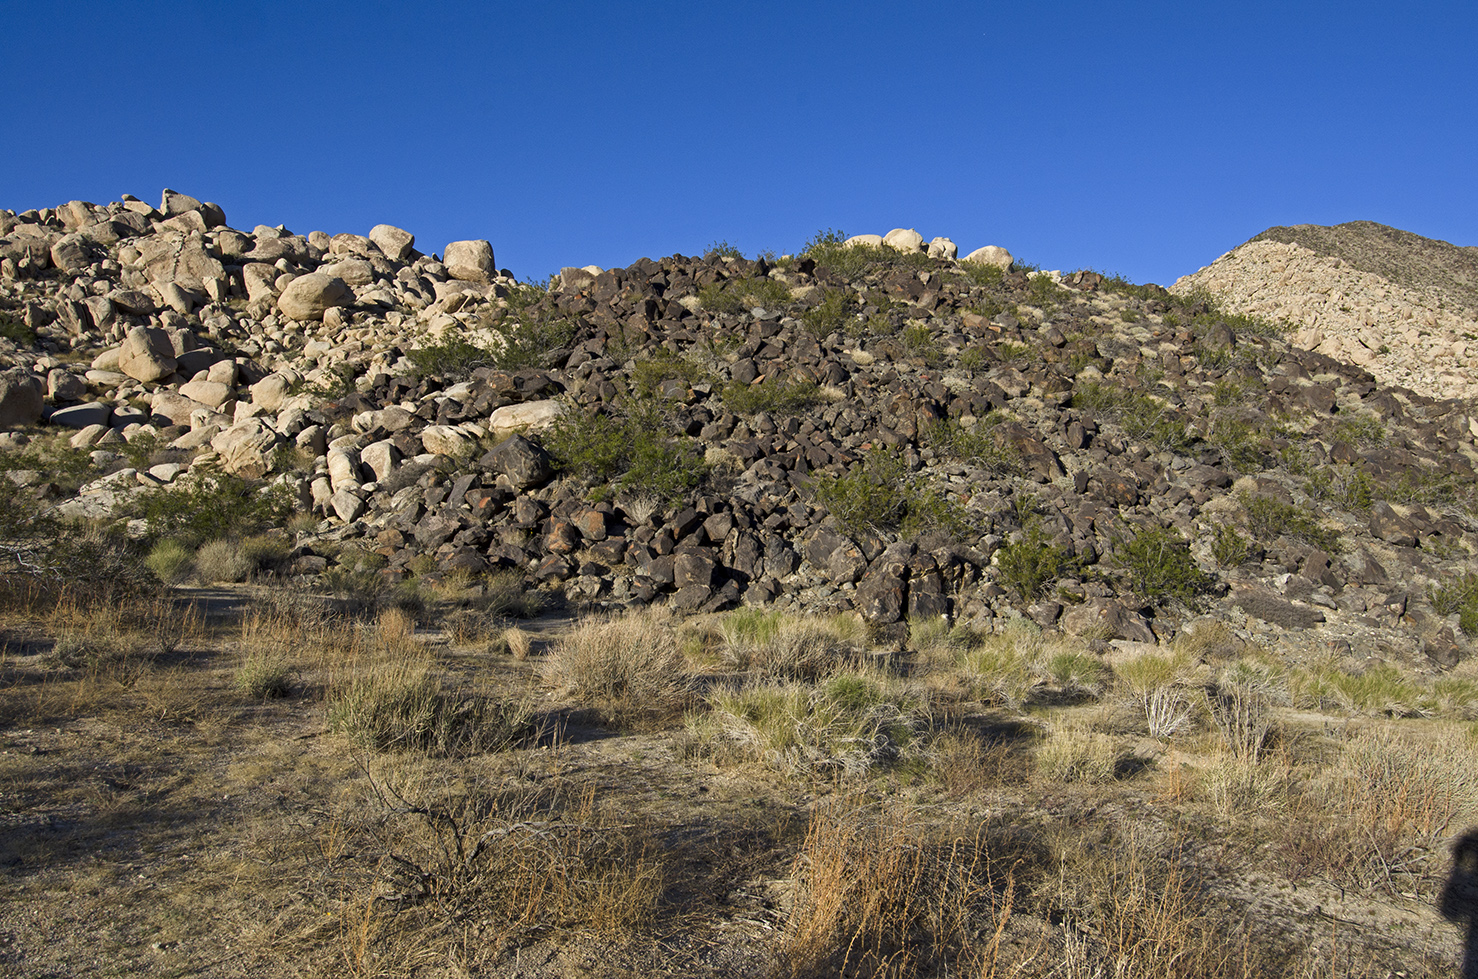 This is the pile of dark rocks that holds the petroglyphs.